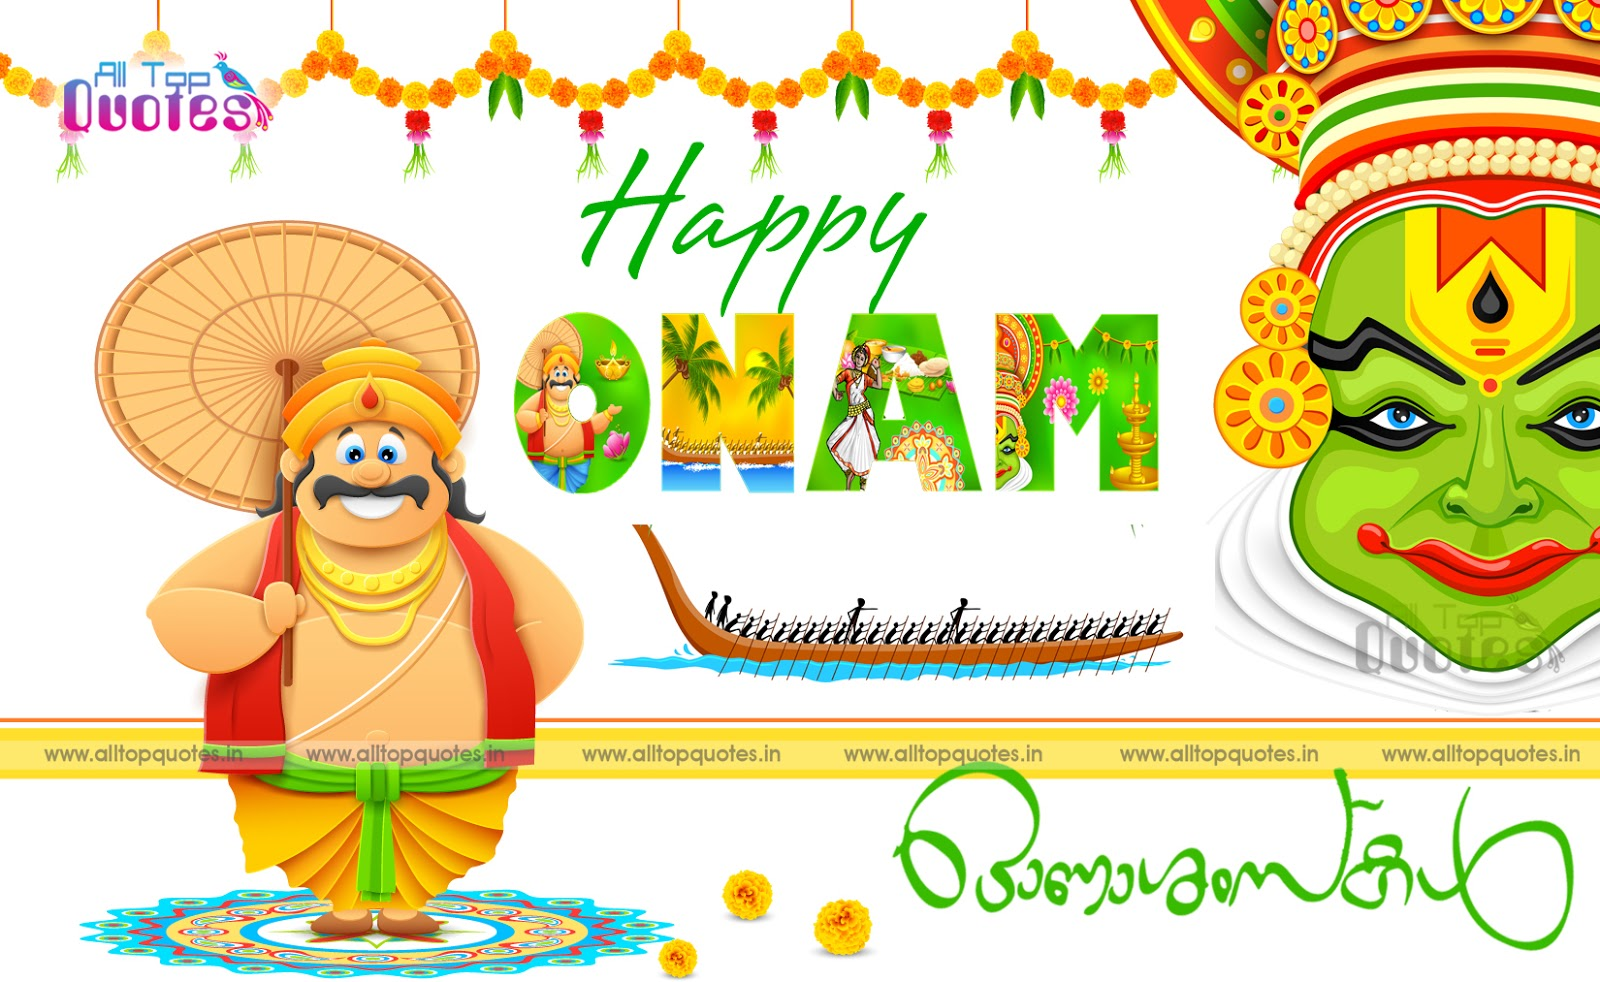 Happy onam greetings images malayalam and english all top quotes happy onam best wishes quotes greetings sms pictures kristyandbryce Image collections